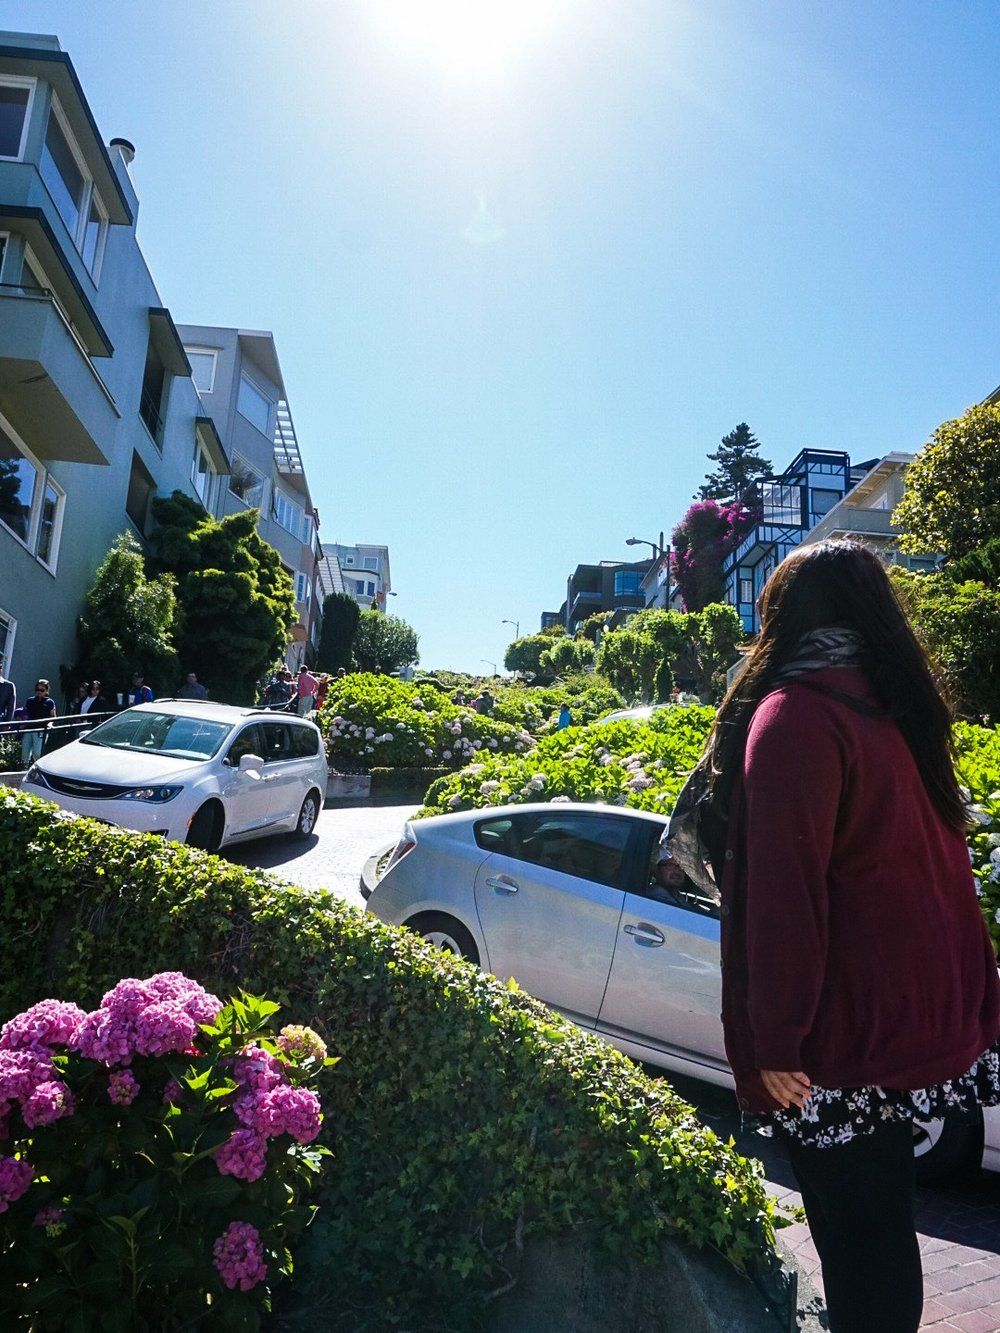 Looking up at Lombard Street